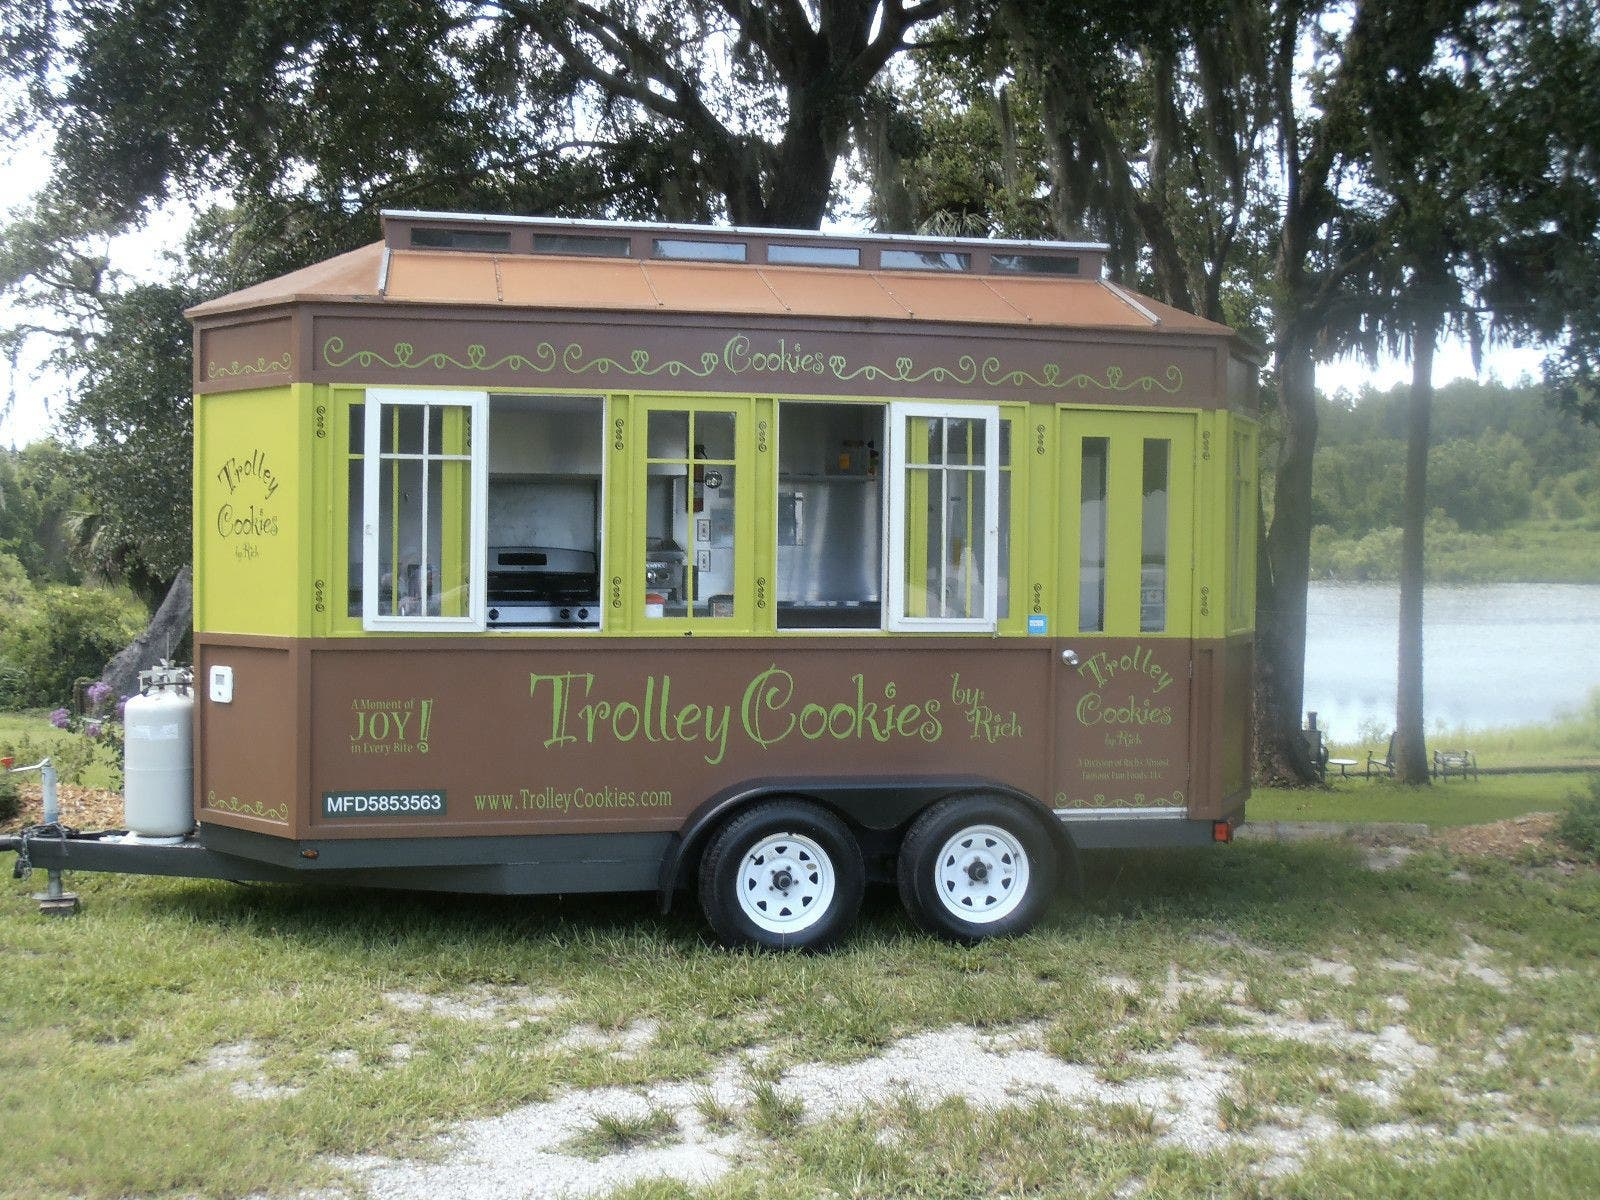 Used Campers For Sale >> Concession Trailers as Tiny Houses